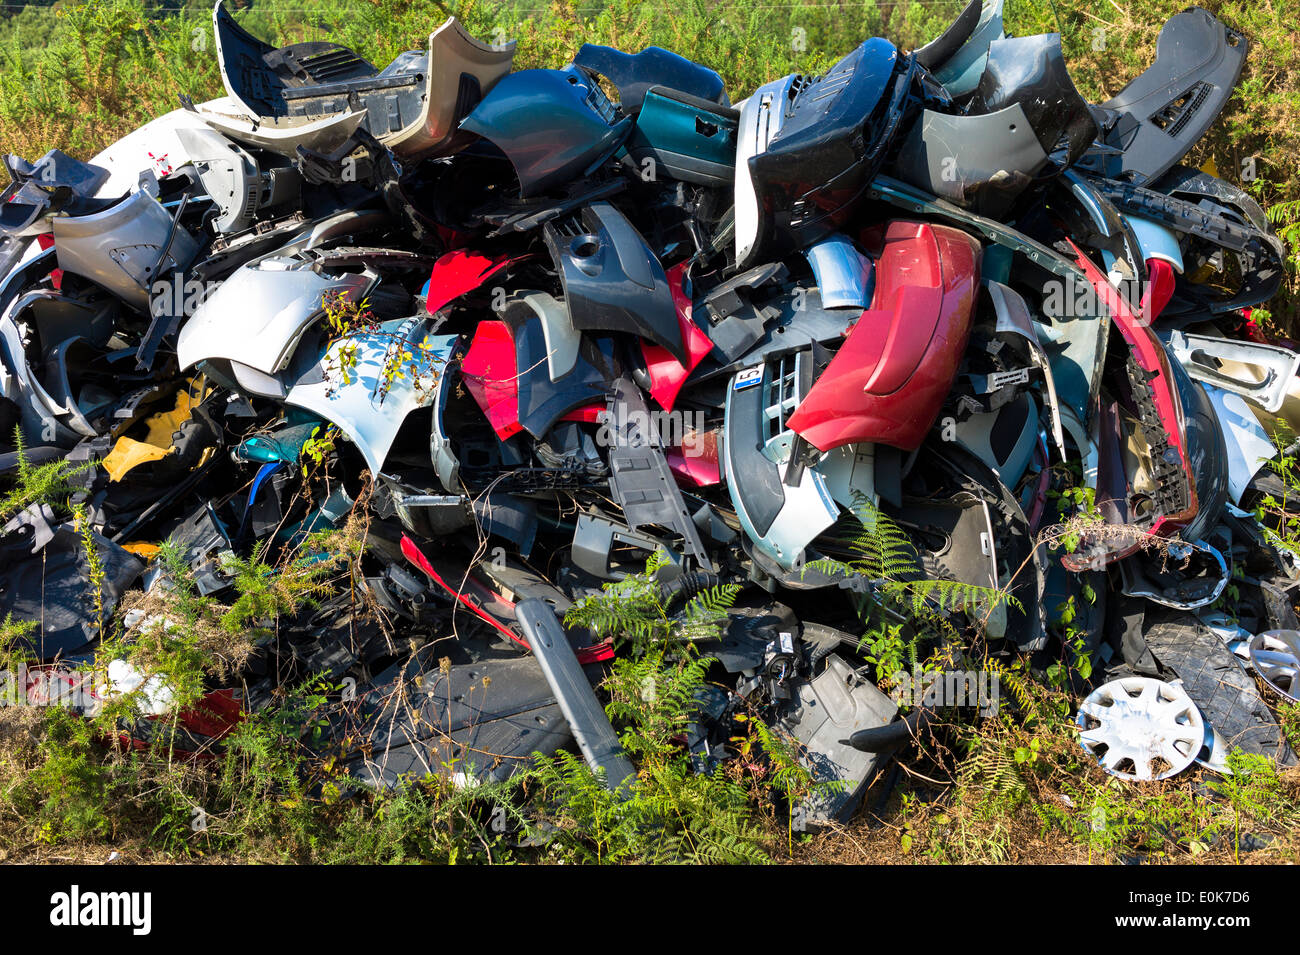 Broken car body parts for metal recycling at Renault motor dealers in Asturias, Northern Spain - Stock Image